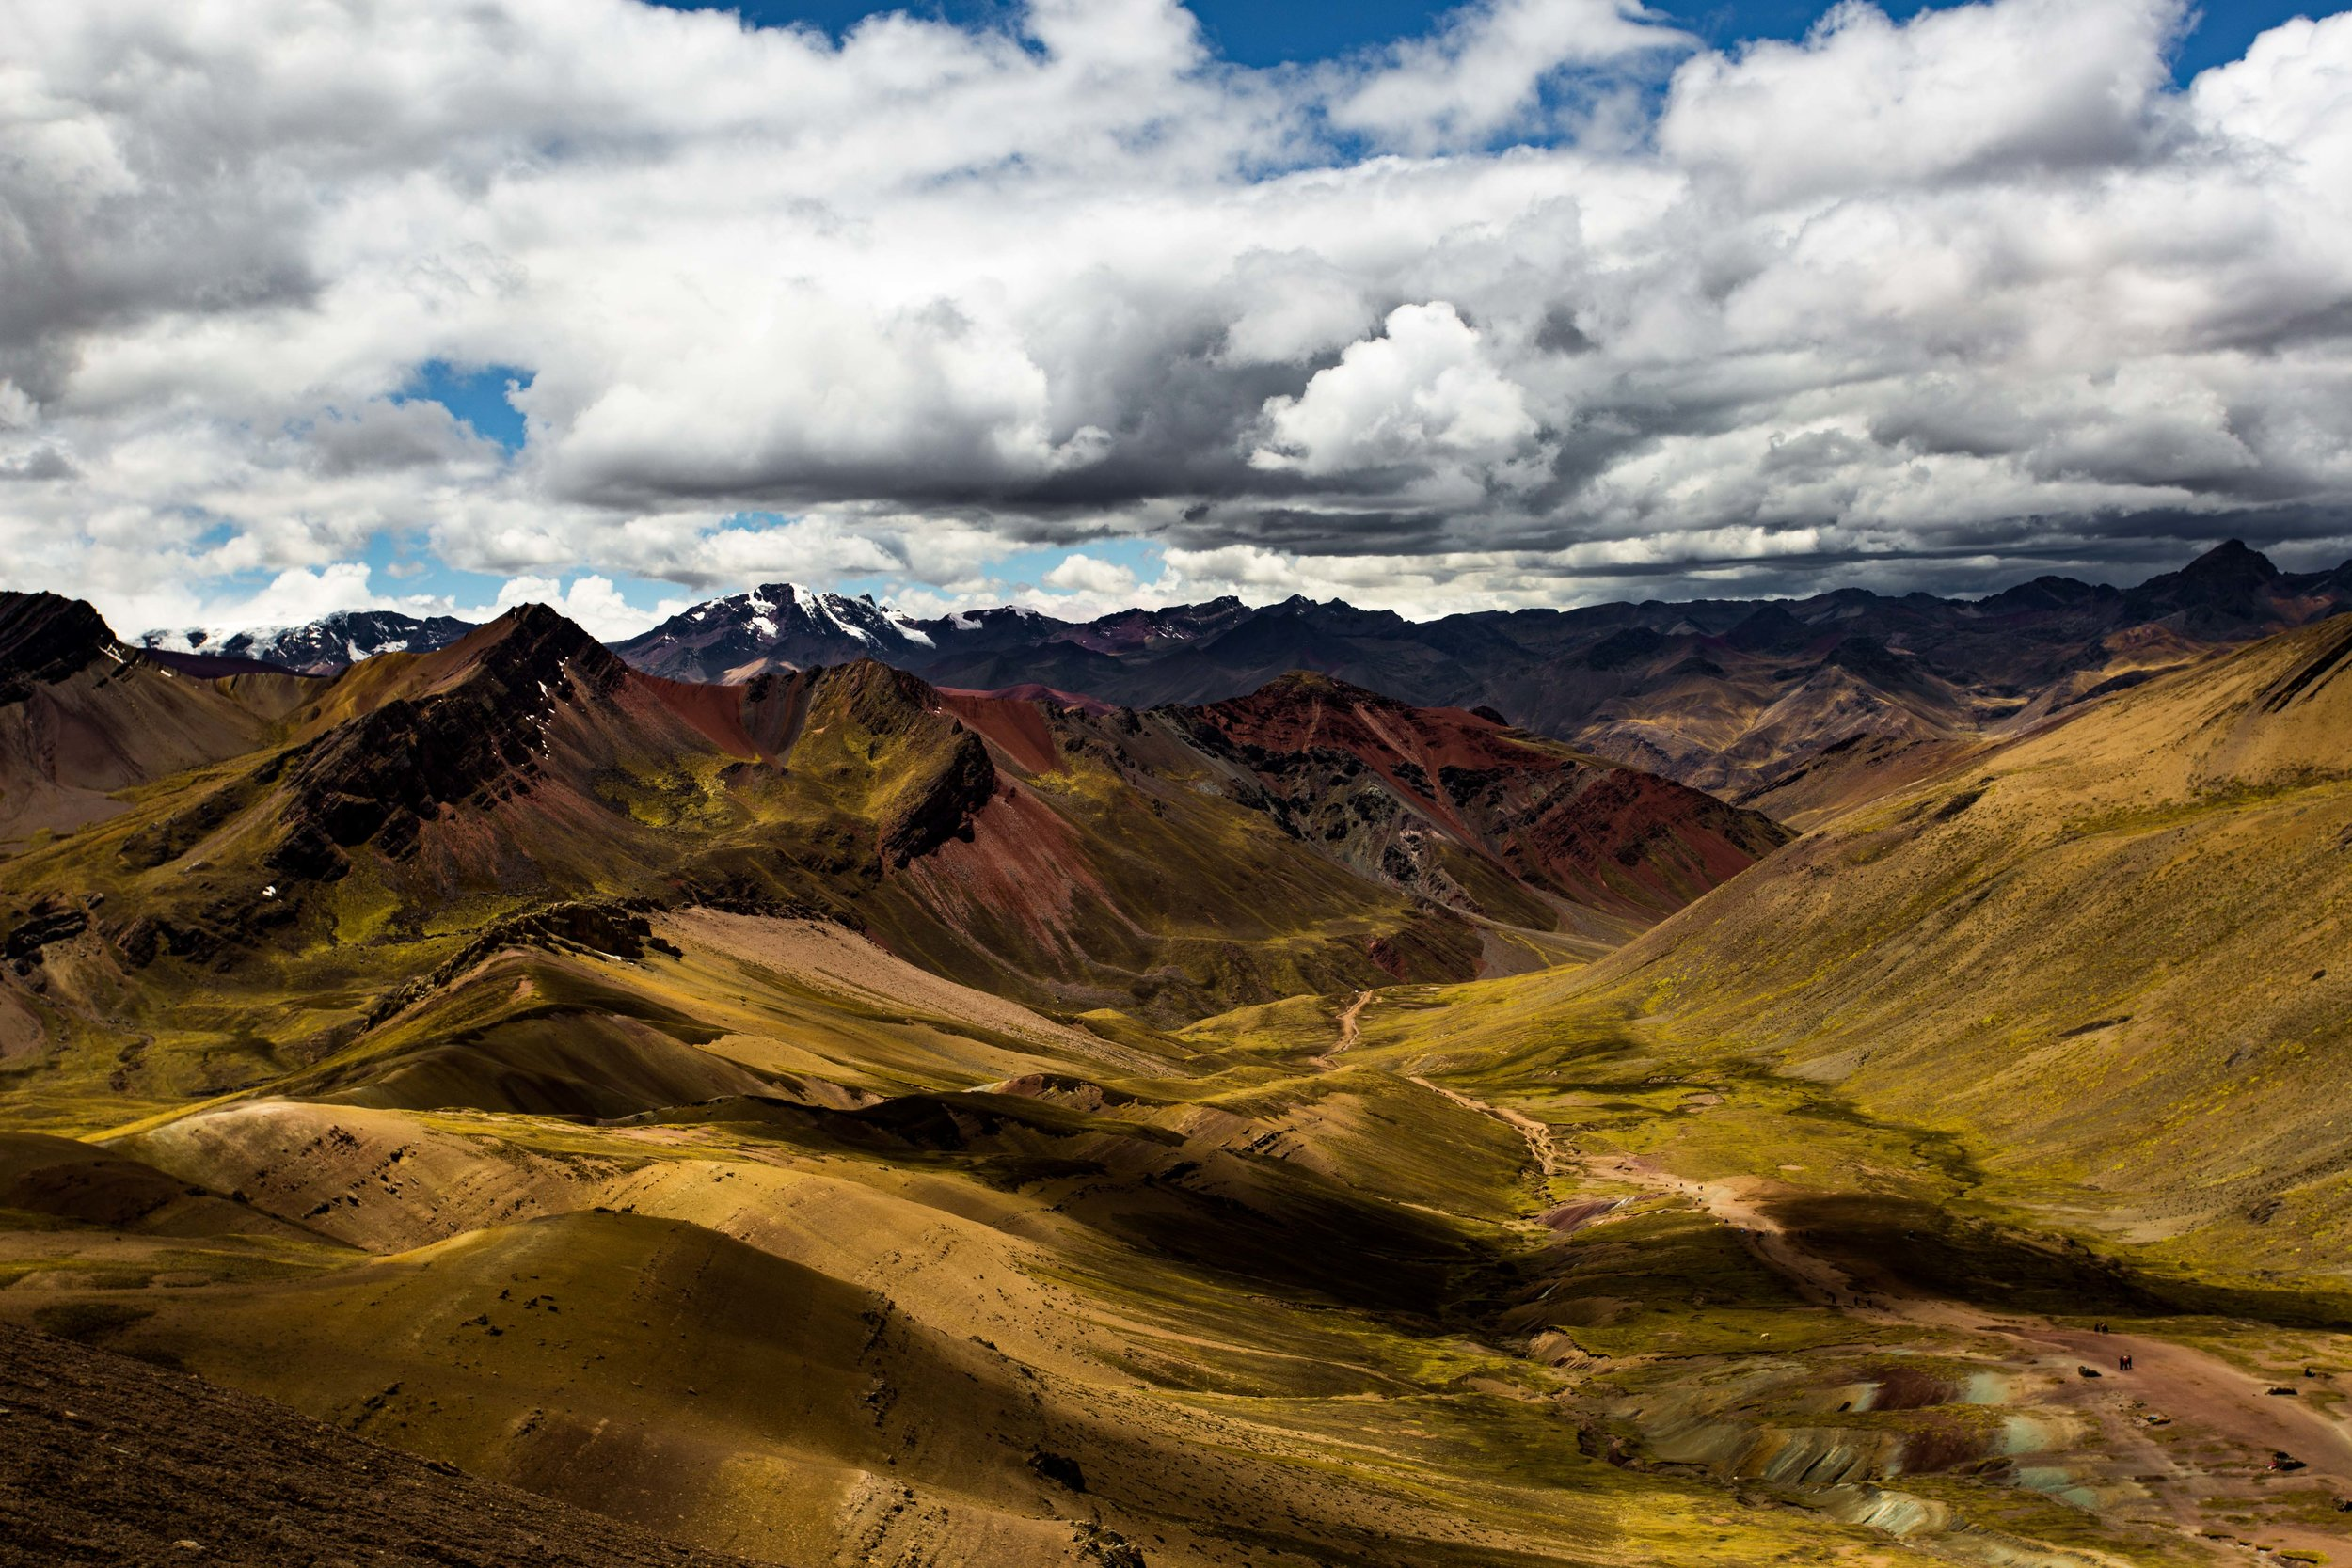 Welcome to the Peruvian Andes